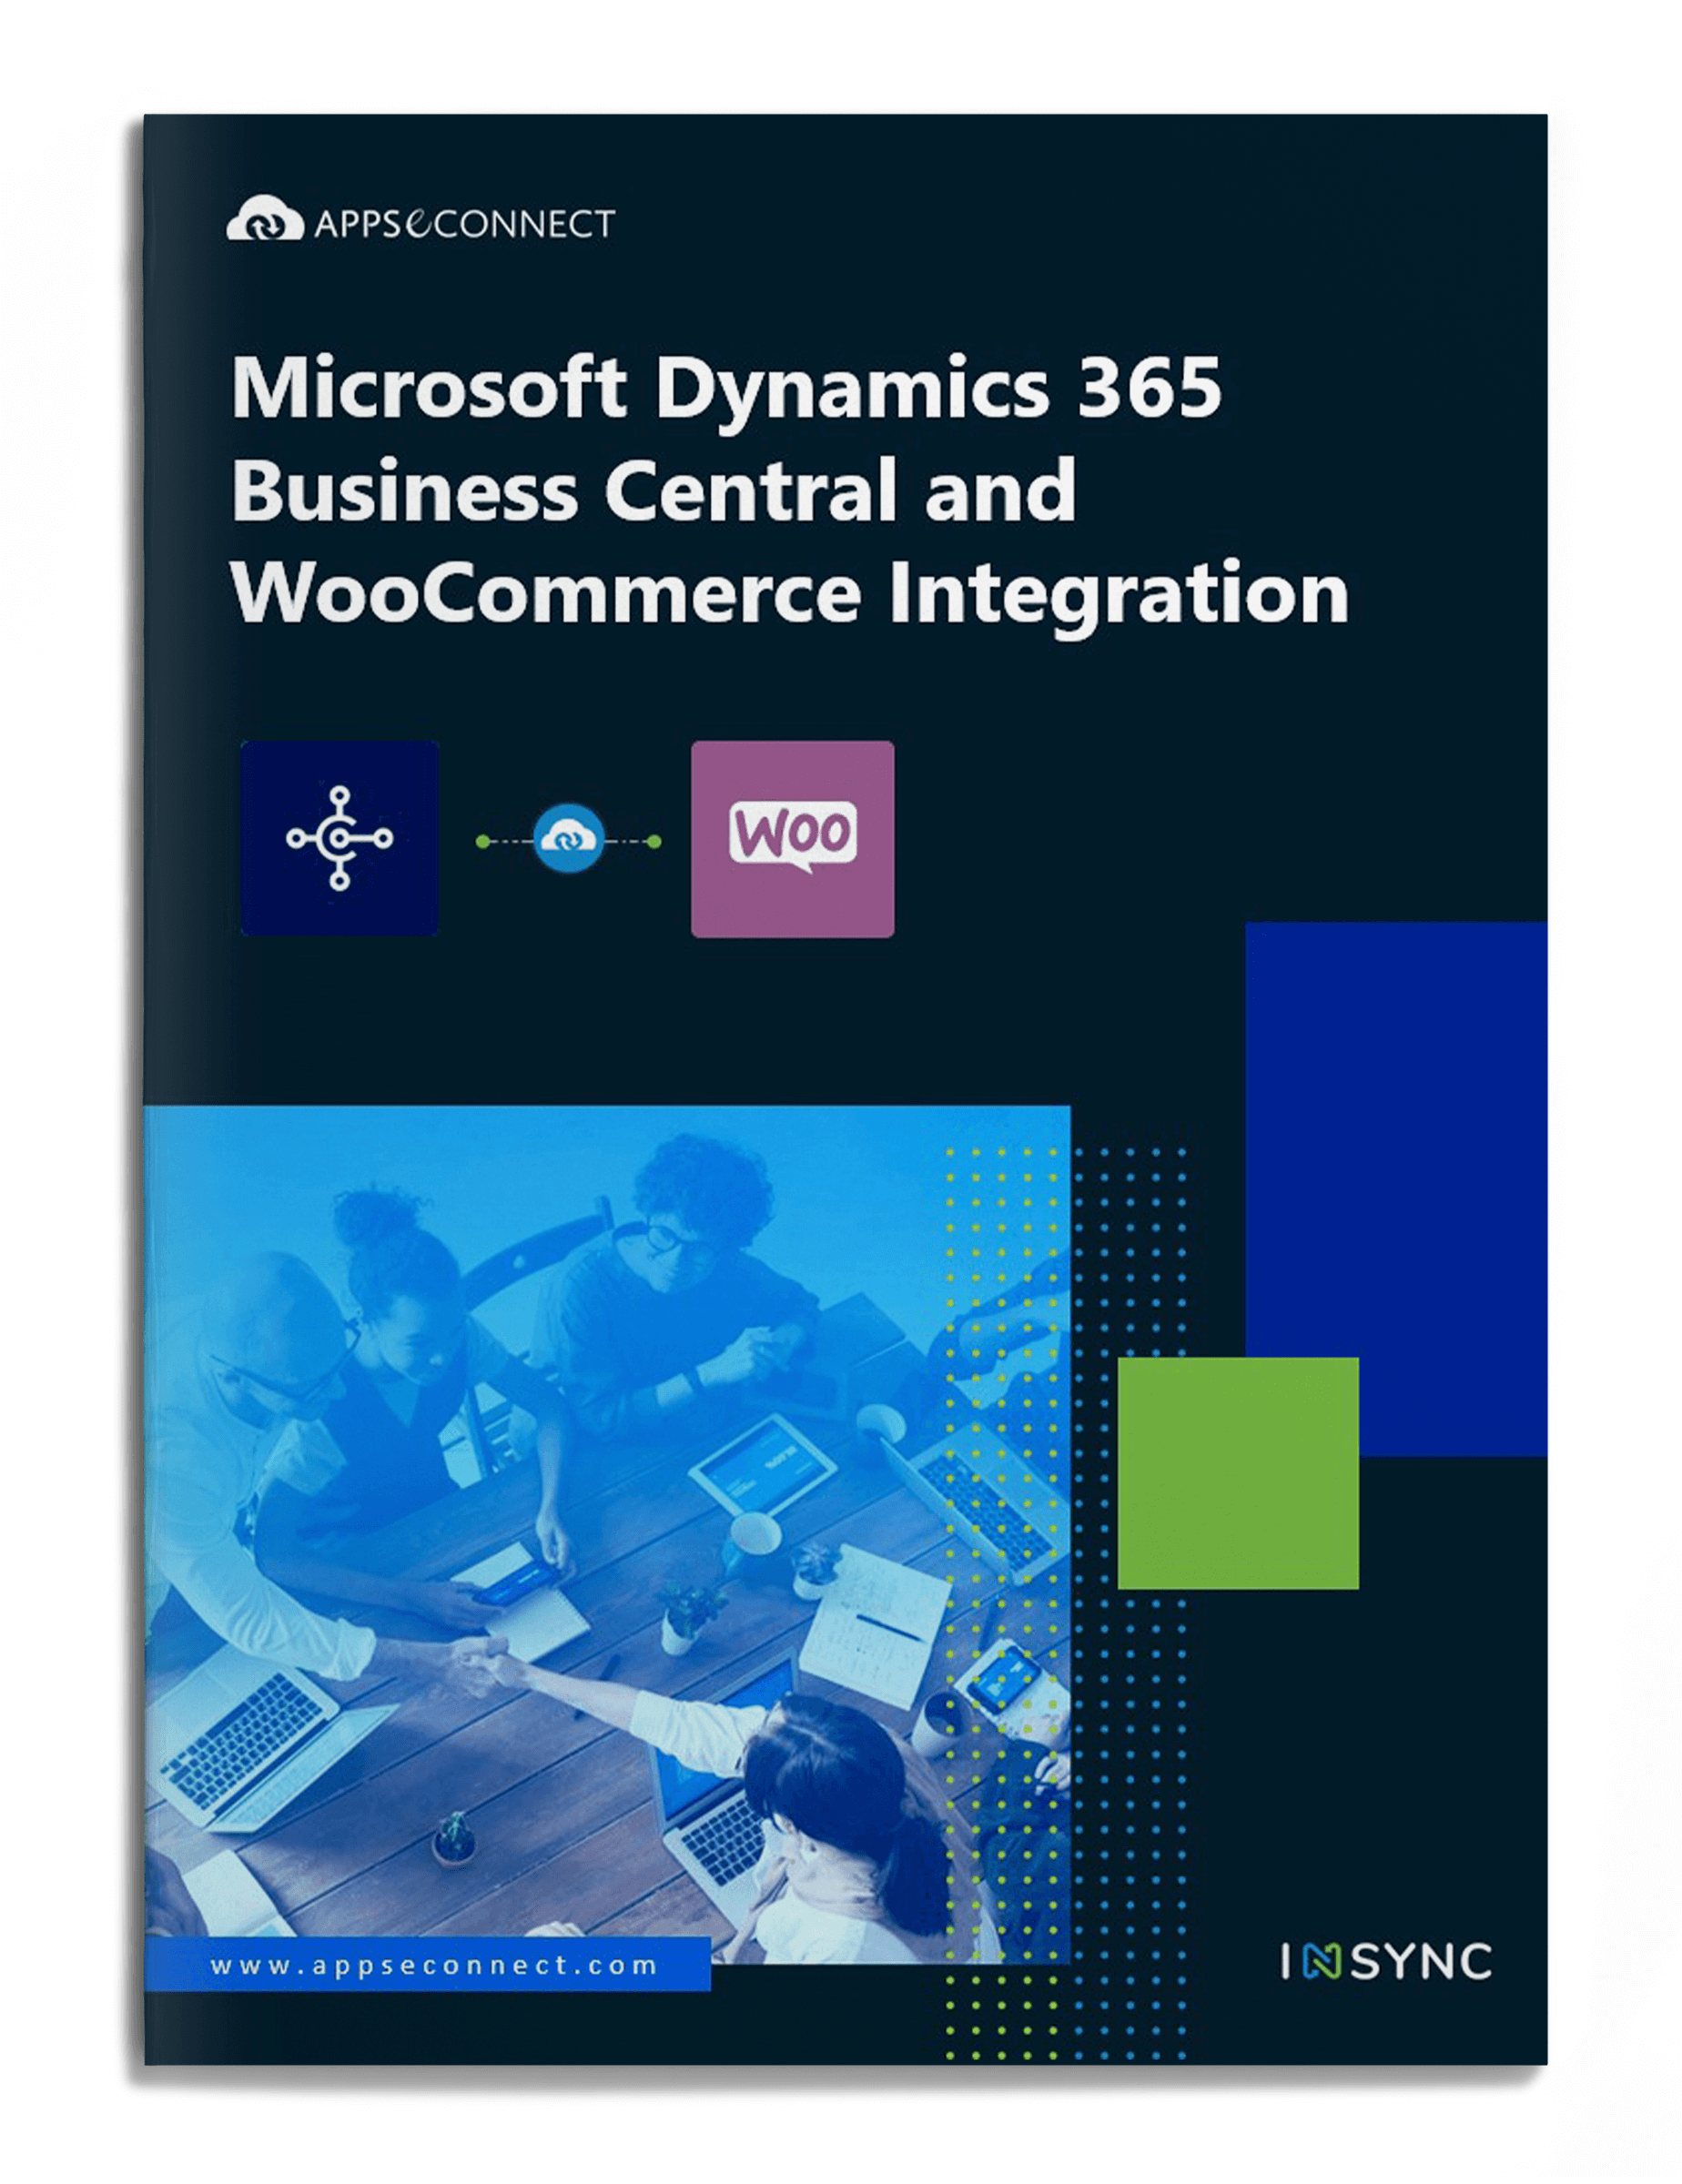 microsoft-dynamics-365-business-central-erp-woocommerce-integration-brochure-cover